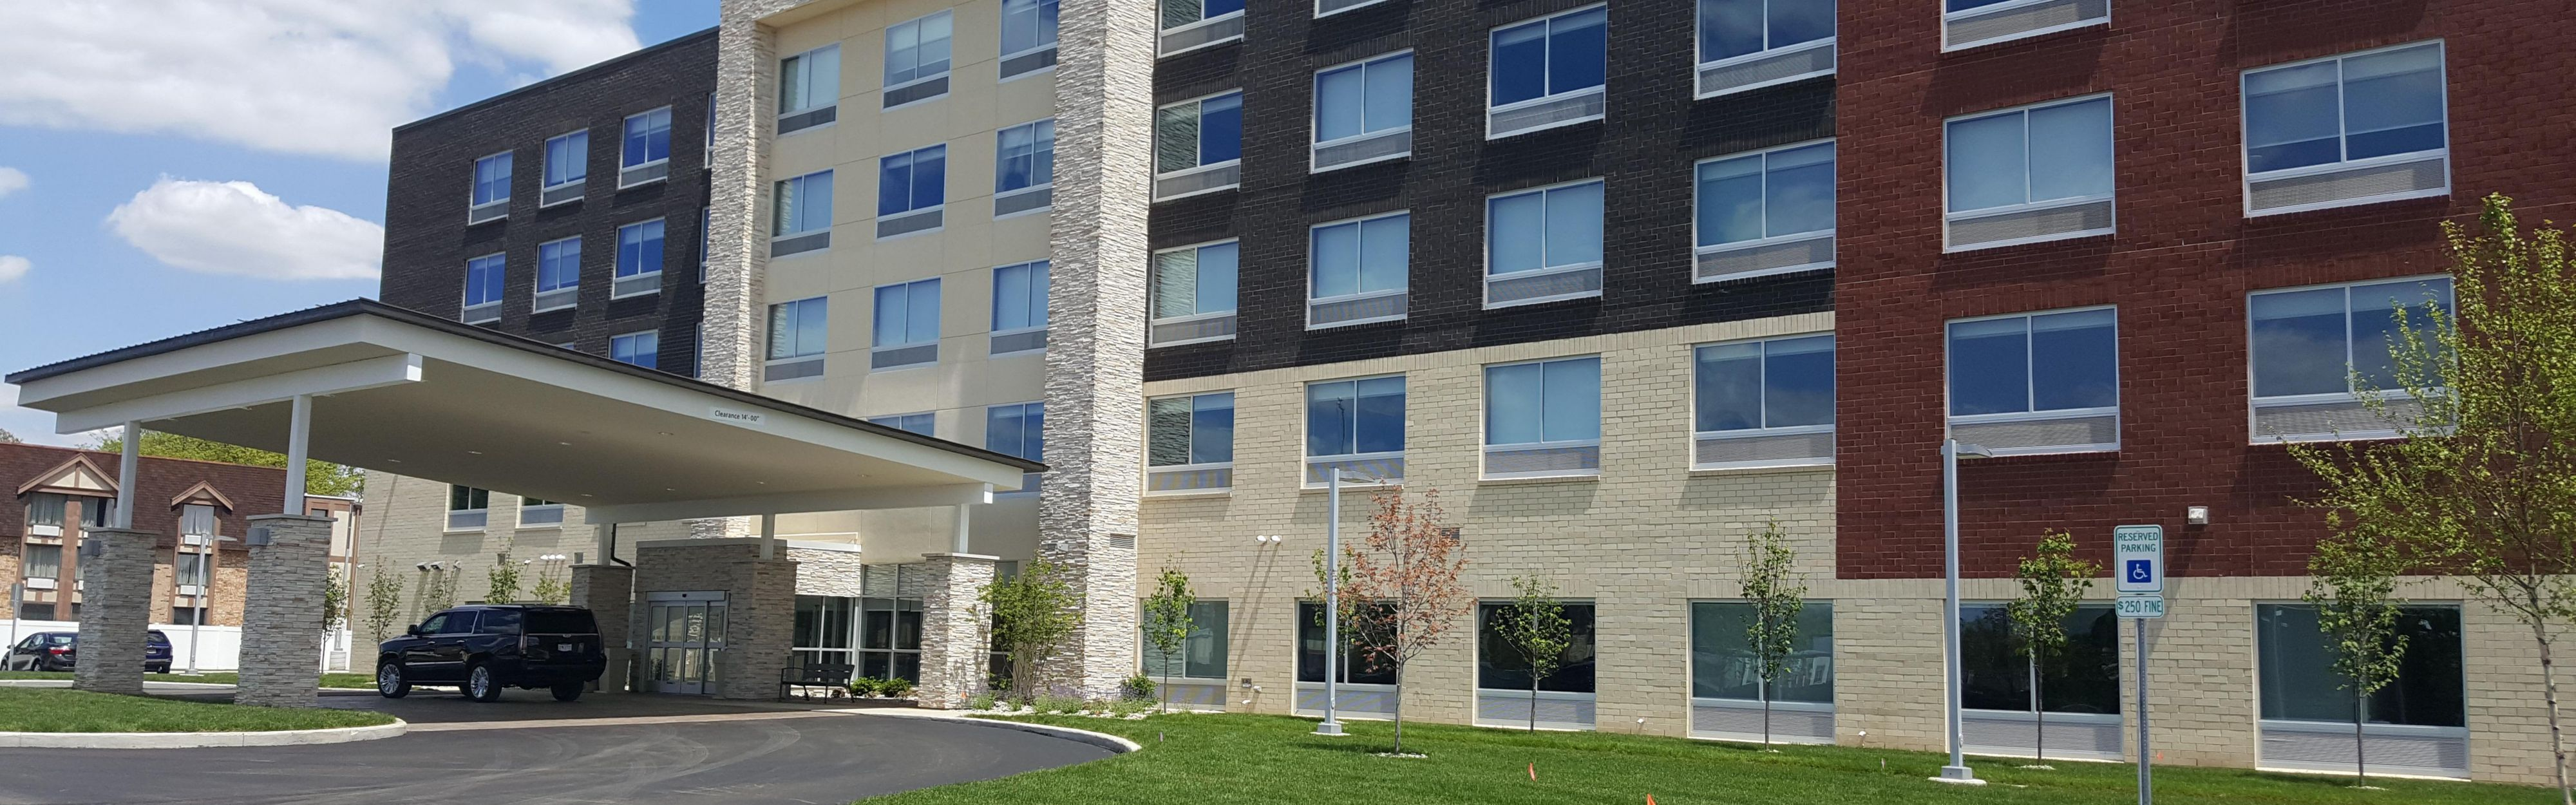 Entrance Exterior Feature Front Desk Hotel With Hotels Near Toledo Ohio